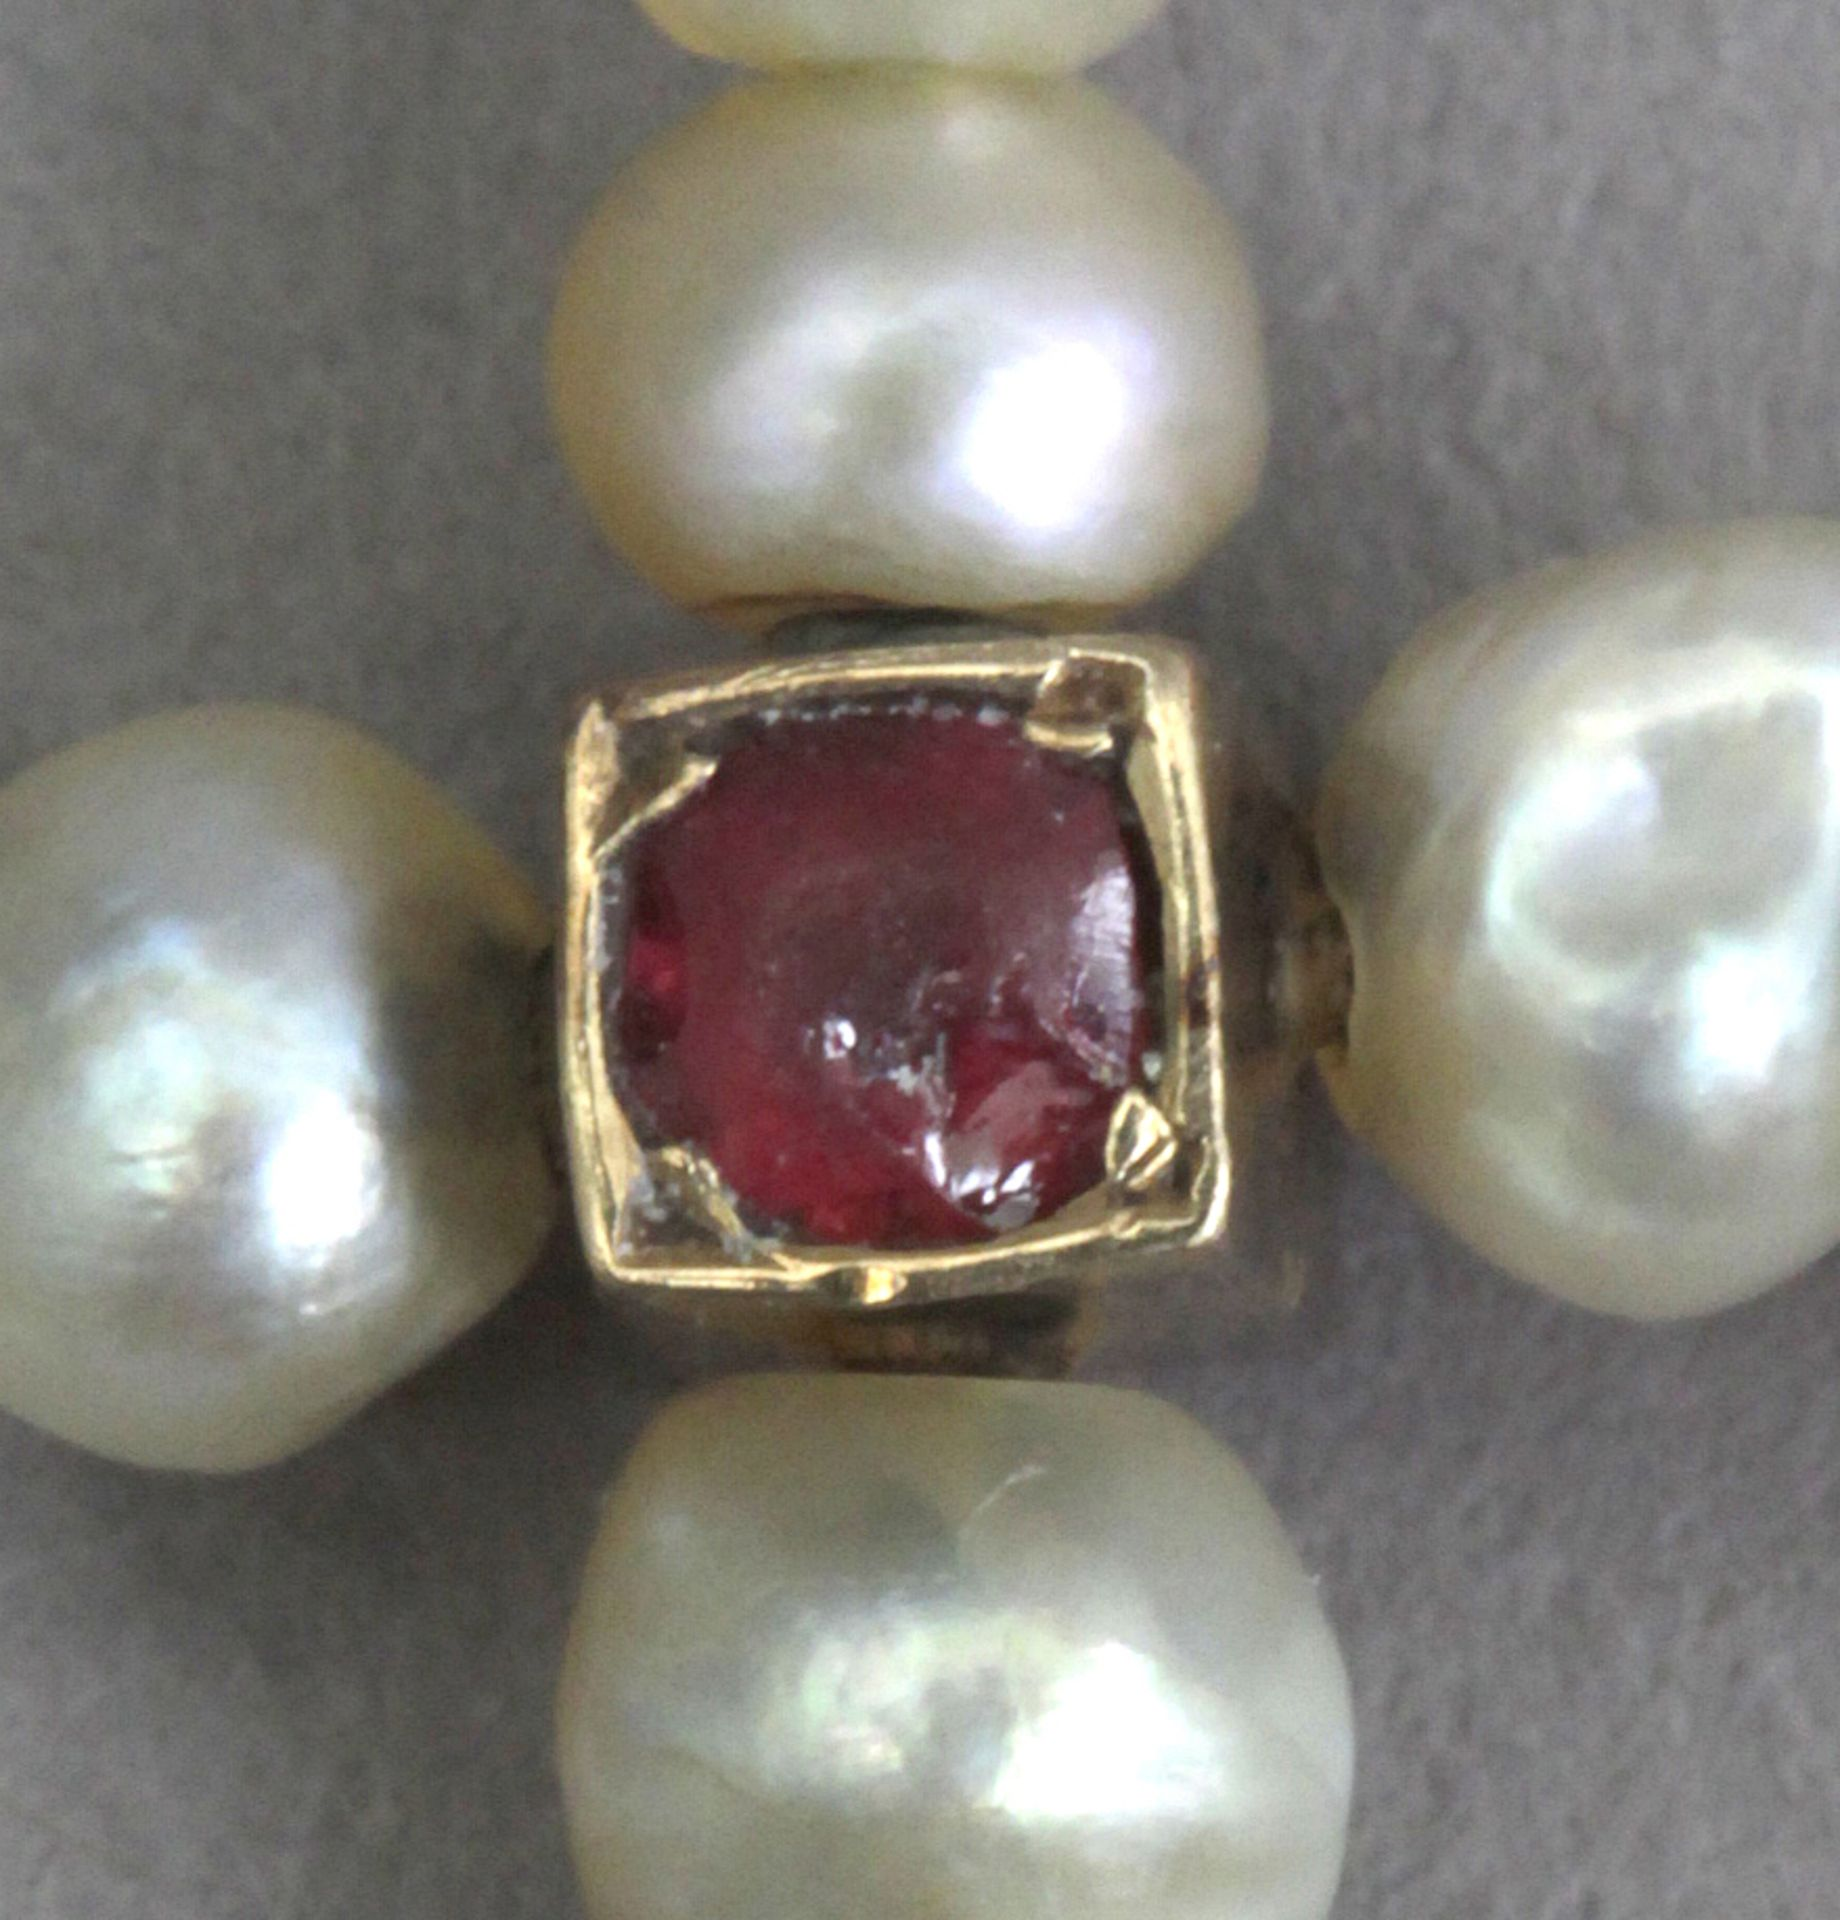 A 19th century freshwater pearls, diamonds, and rubies pendant cross - Image 2 of 3